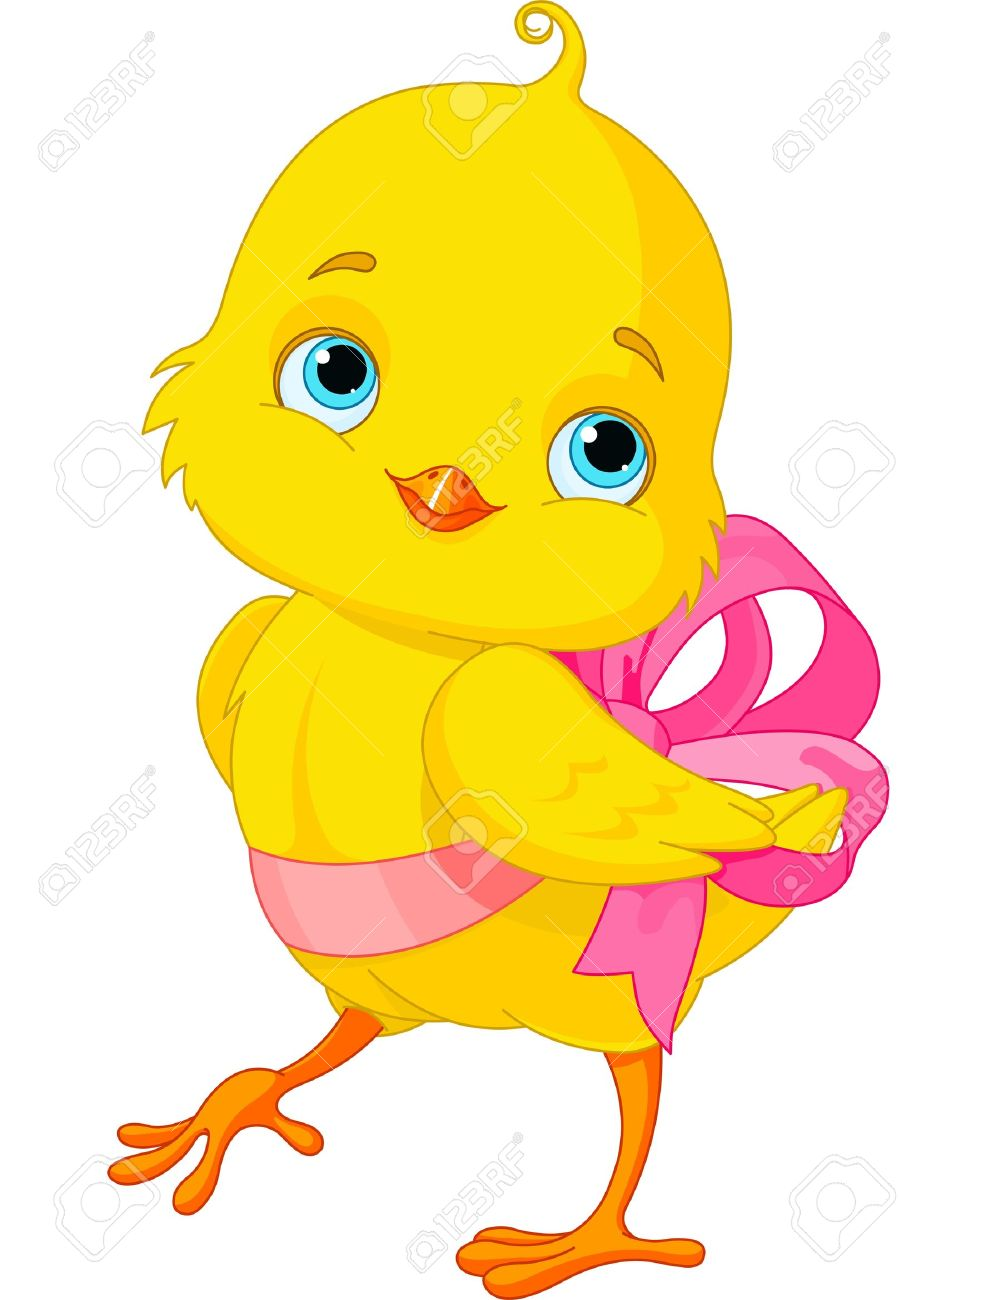 Cute Easter Chick with bow.